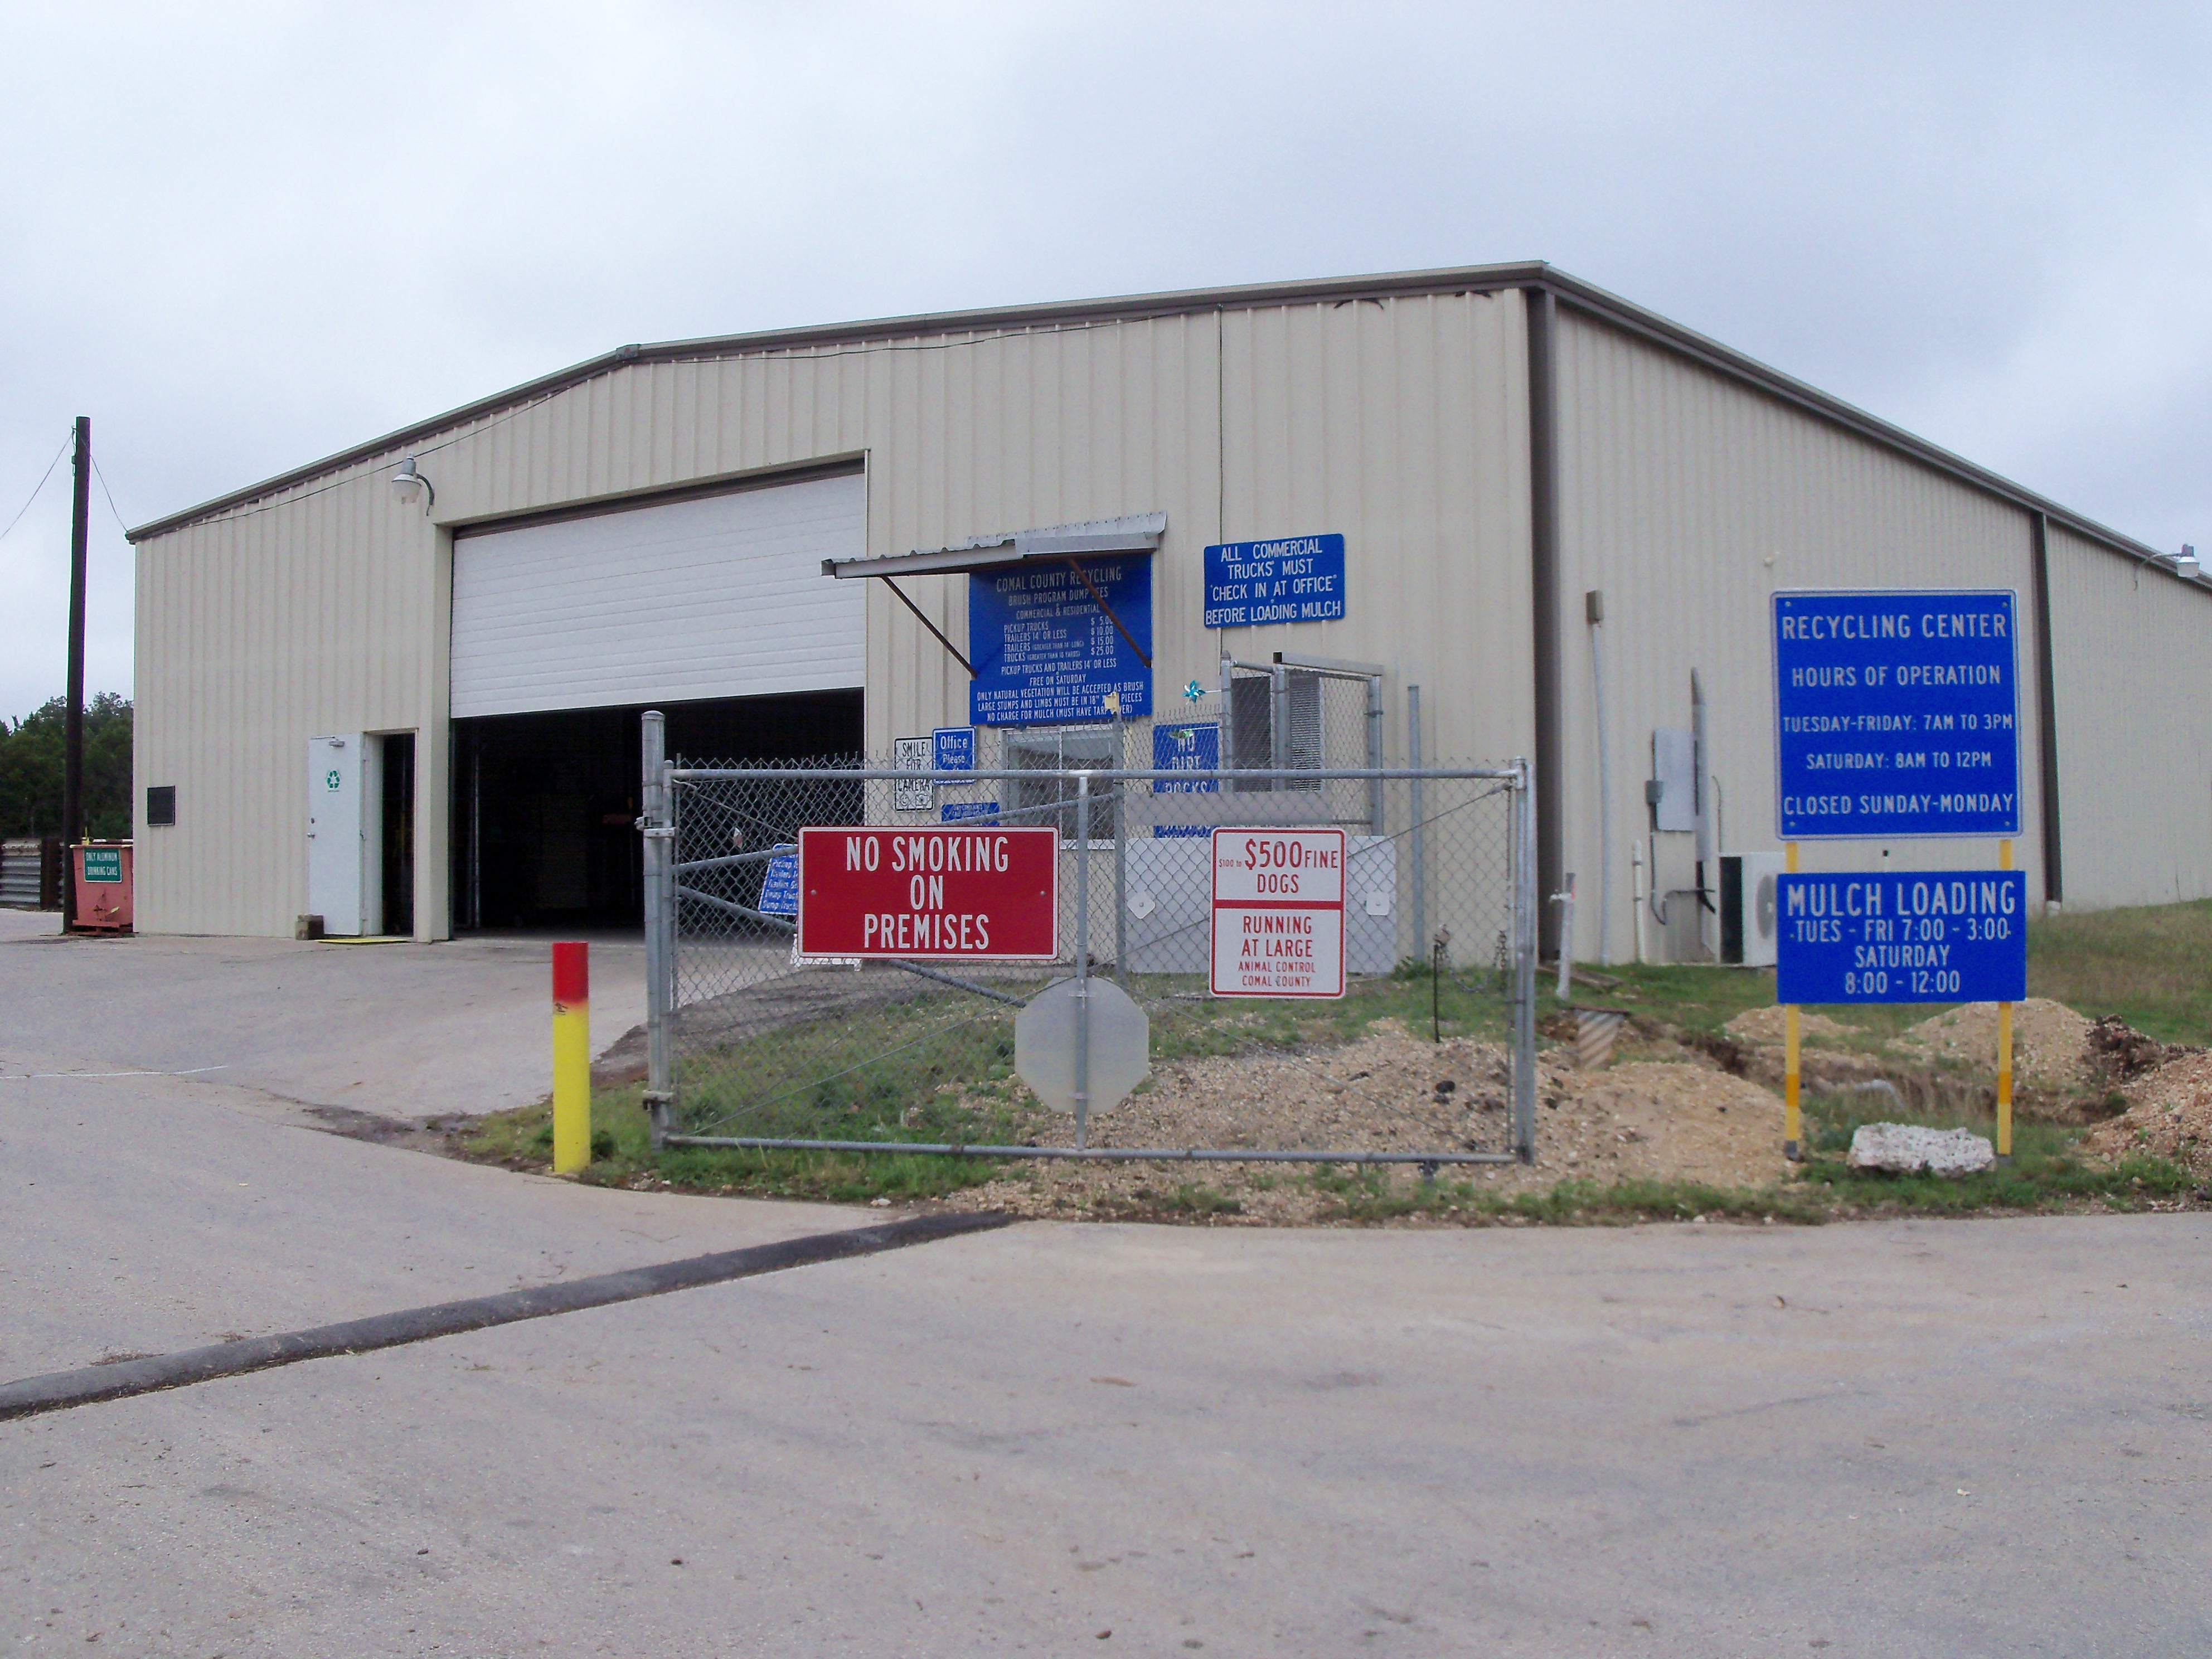 Comal County's recycling center